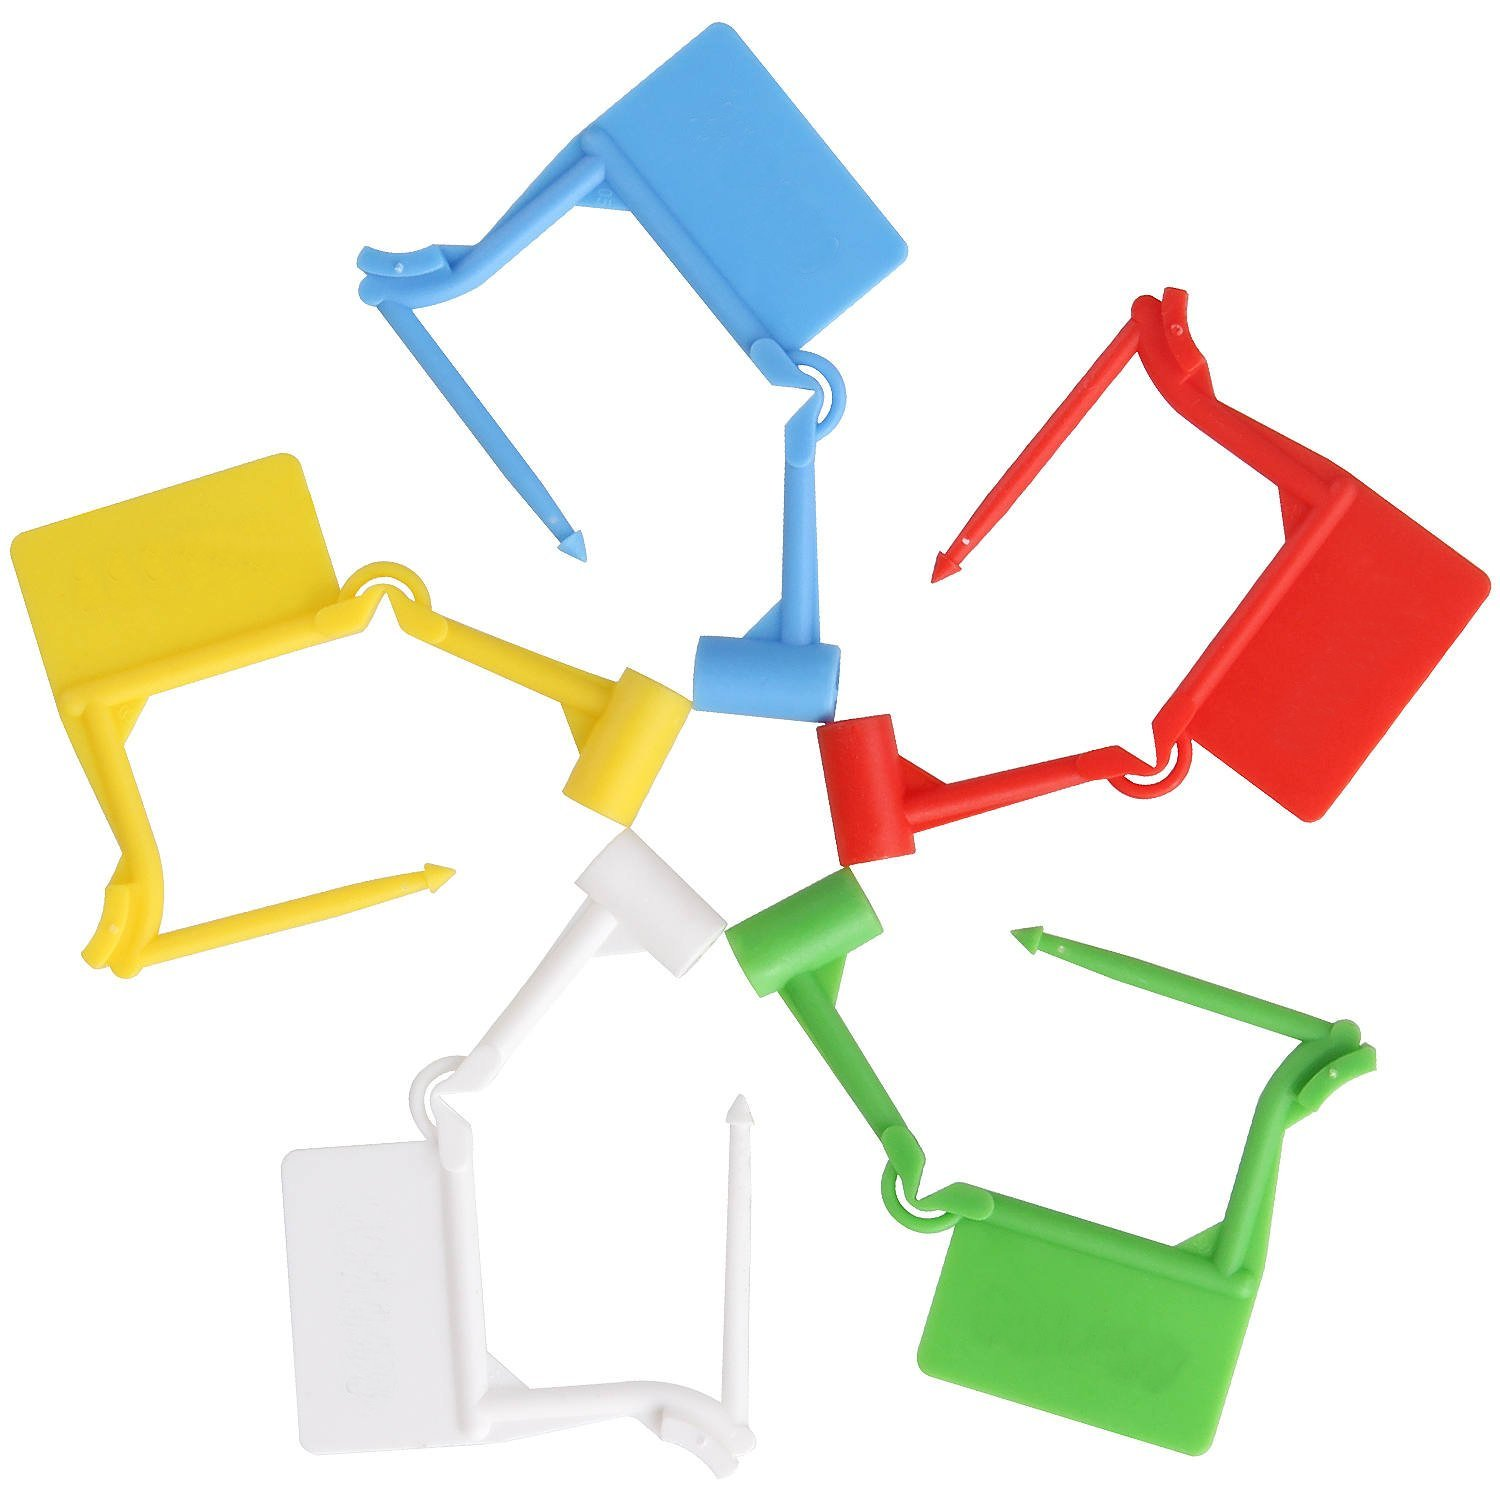 100 pcs Disposable Plastic Padlock Seal, 5 colors self-locking type safety control seals. Ideal for luggage, Document Bag, Transportation, briefcase locking